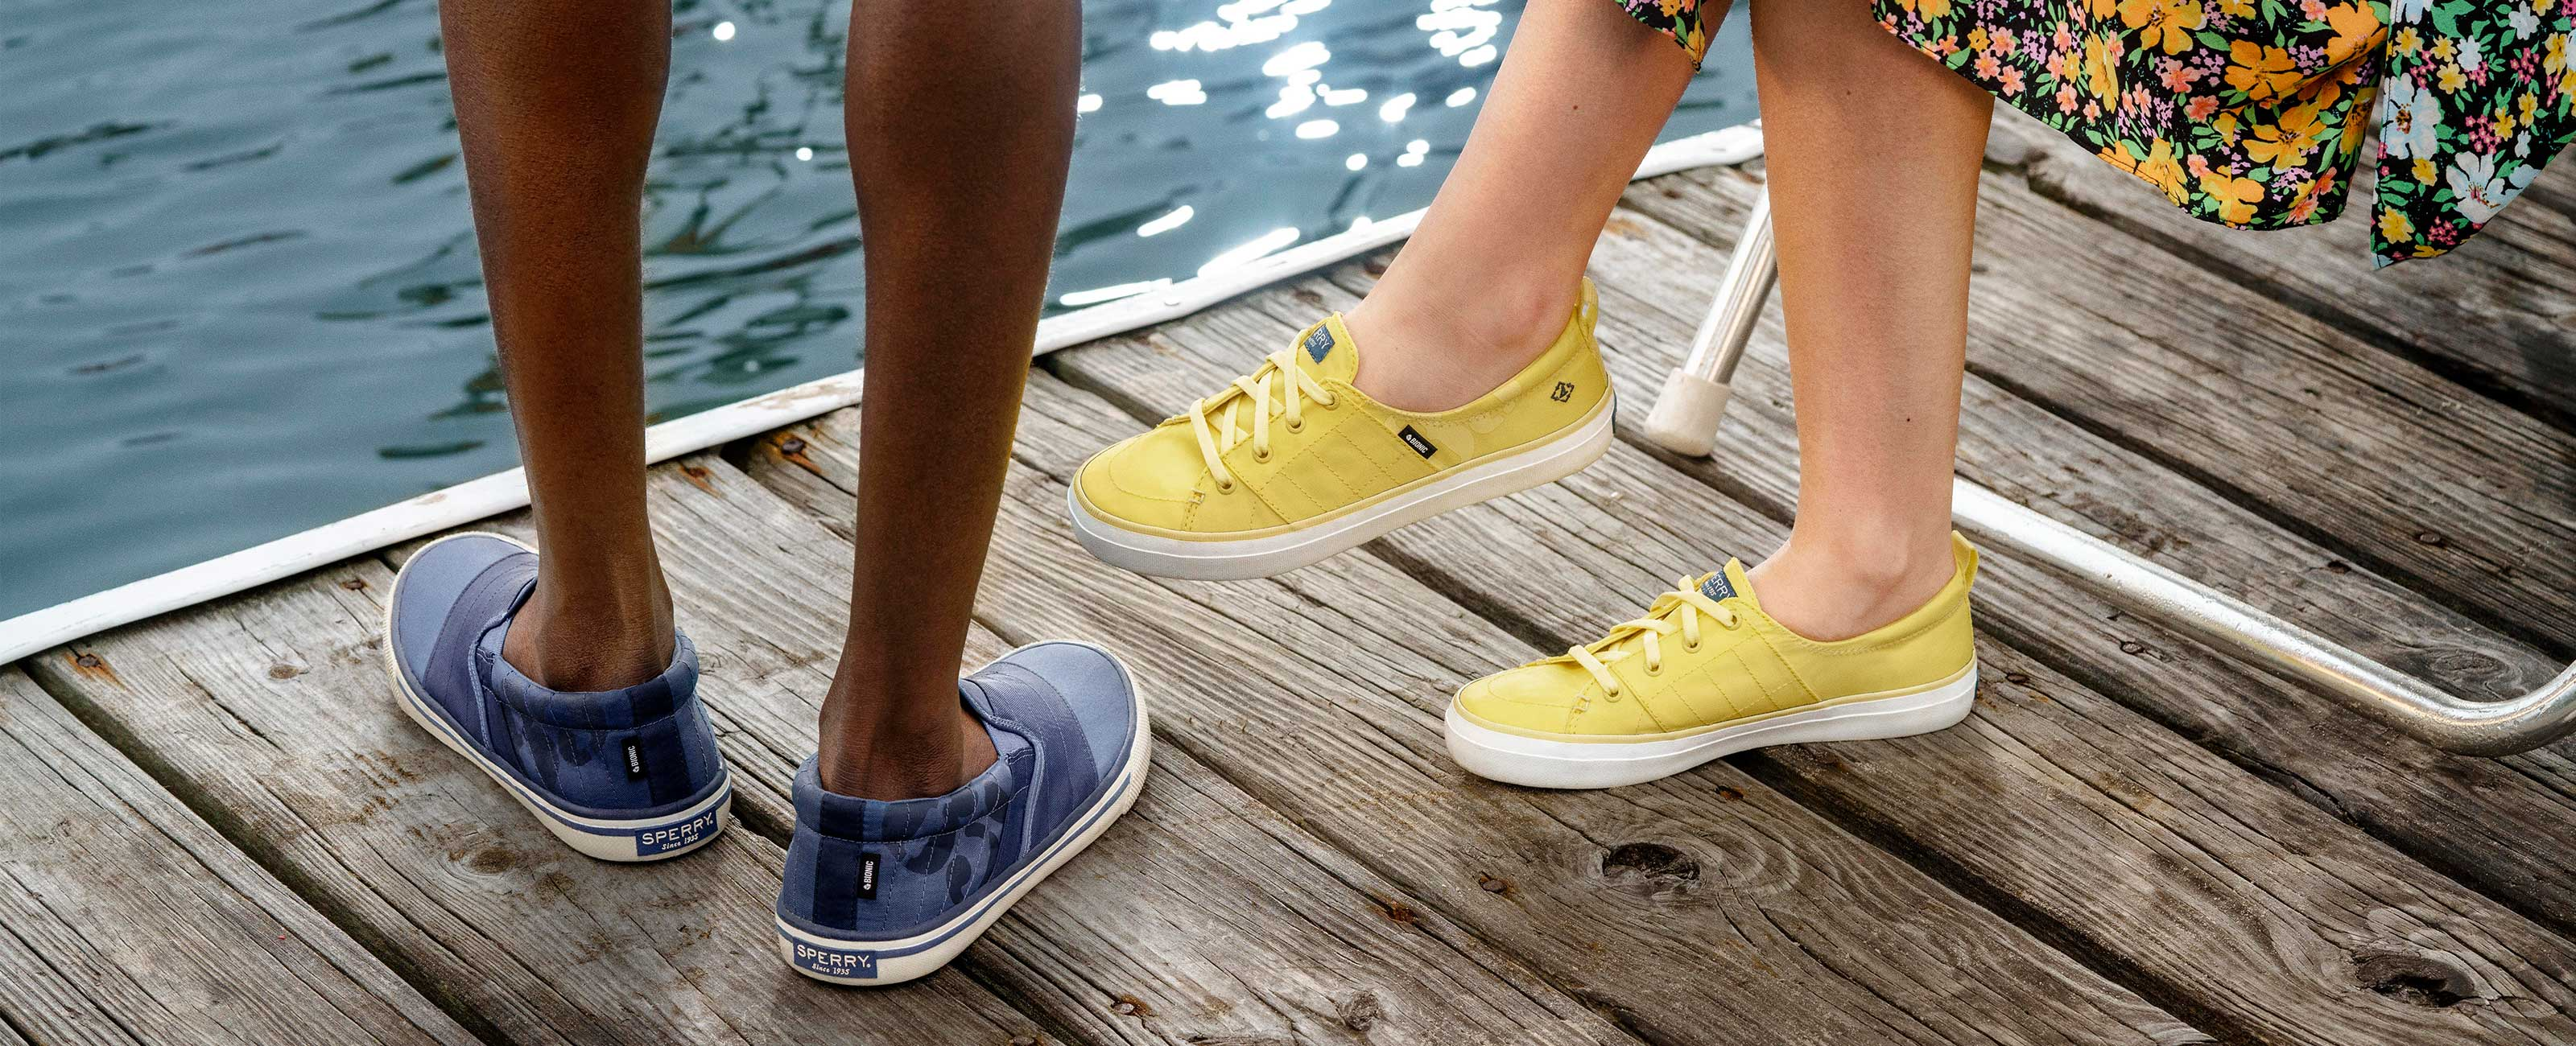 Close up of two pairs of feet wearing Sperry BIONIC shoes, while relaxing on a dock.